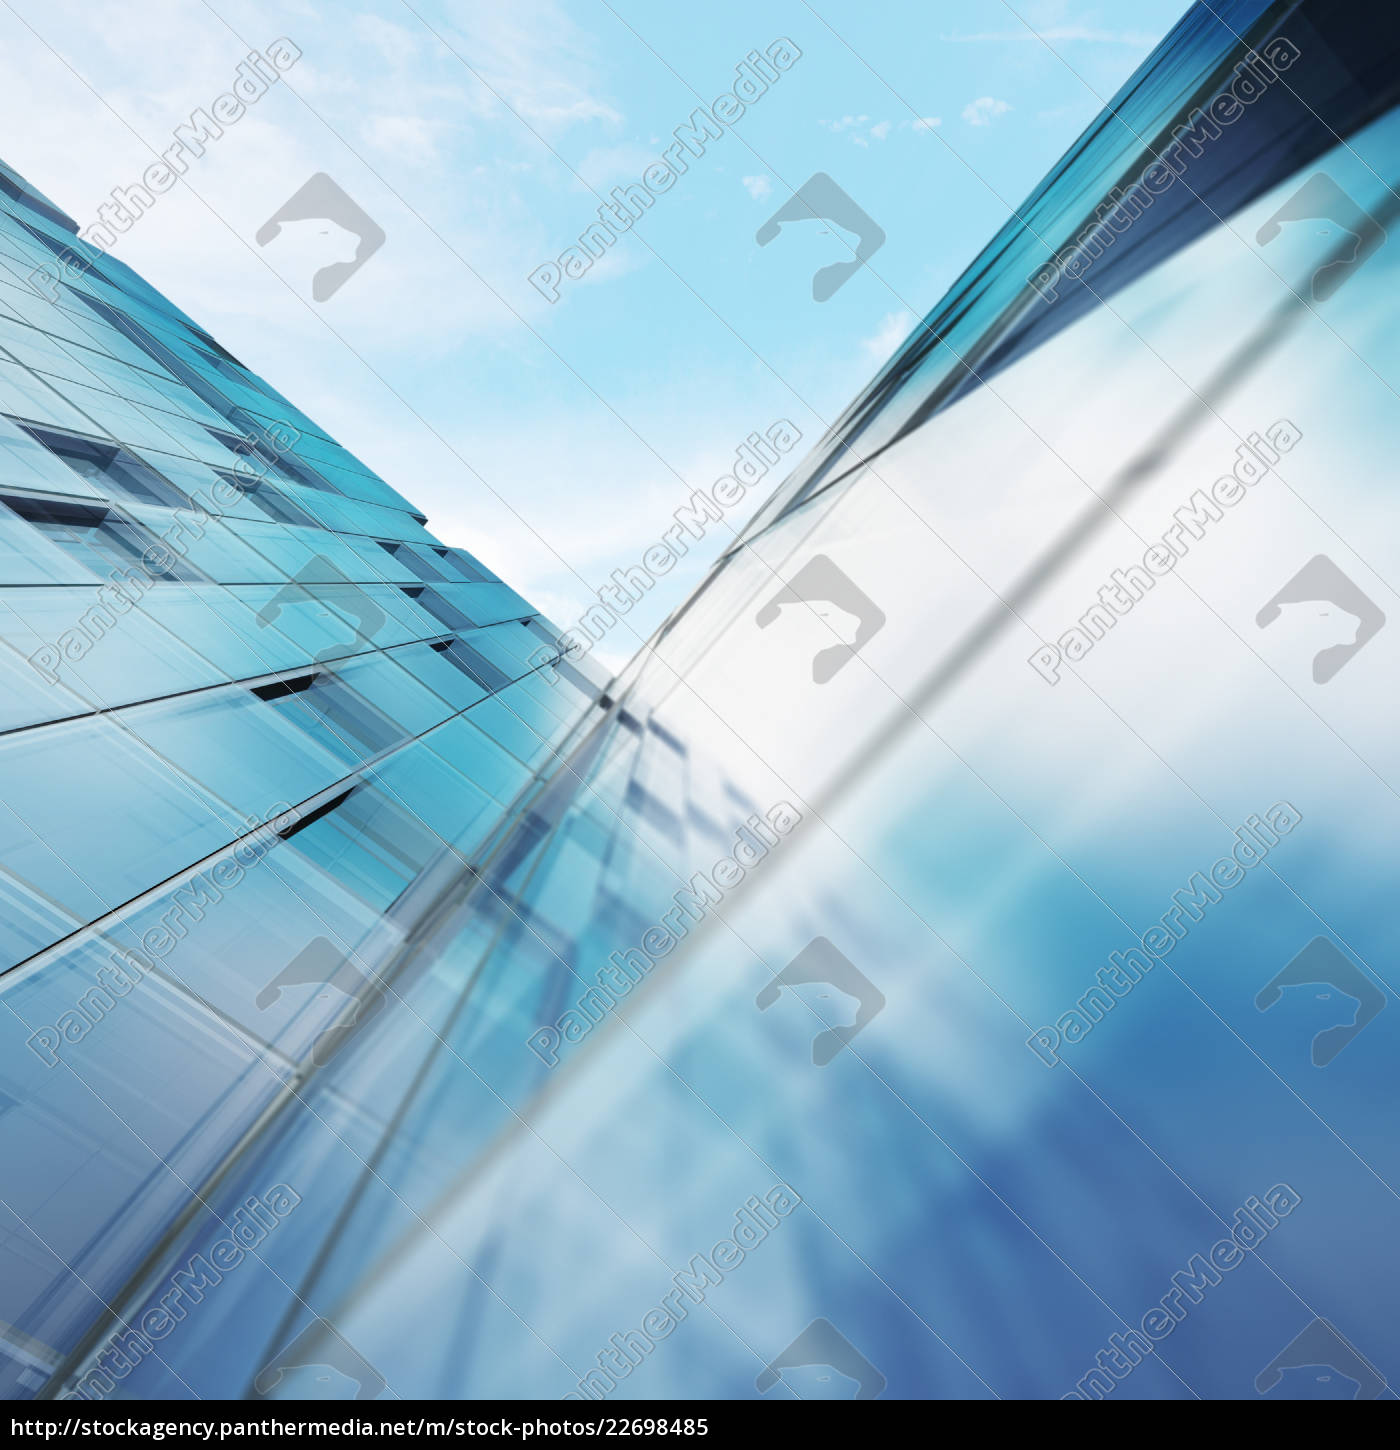 transparent, abstract, building - 22698485